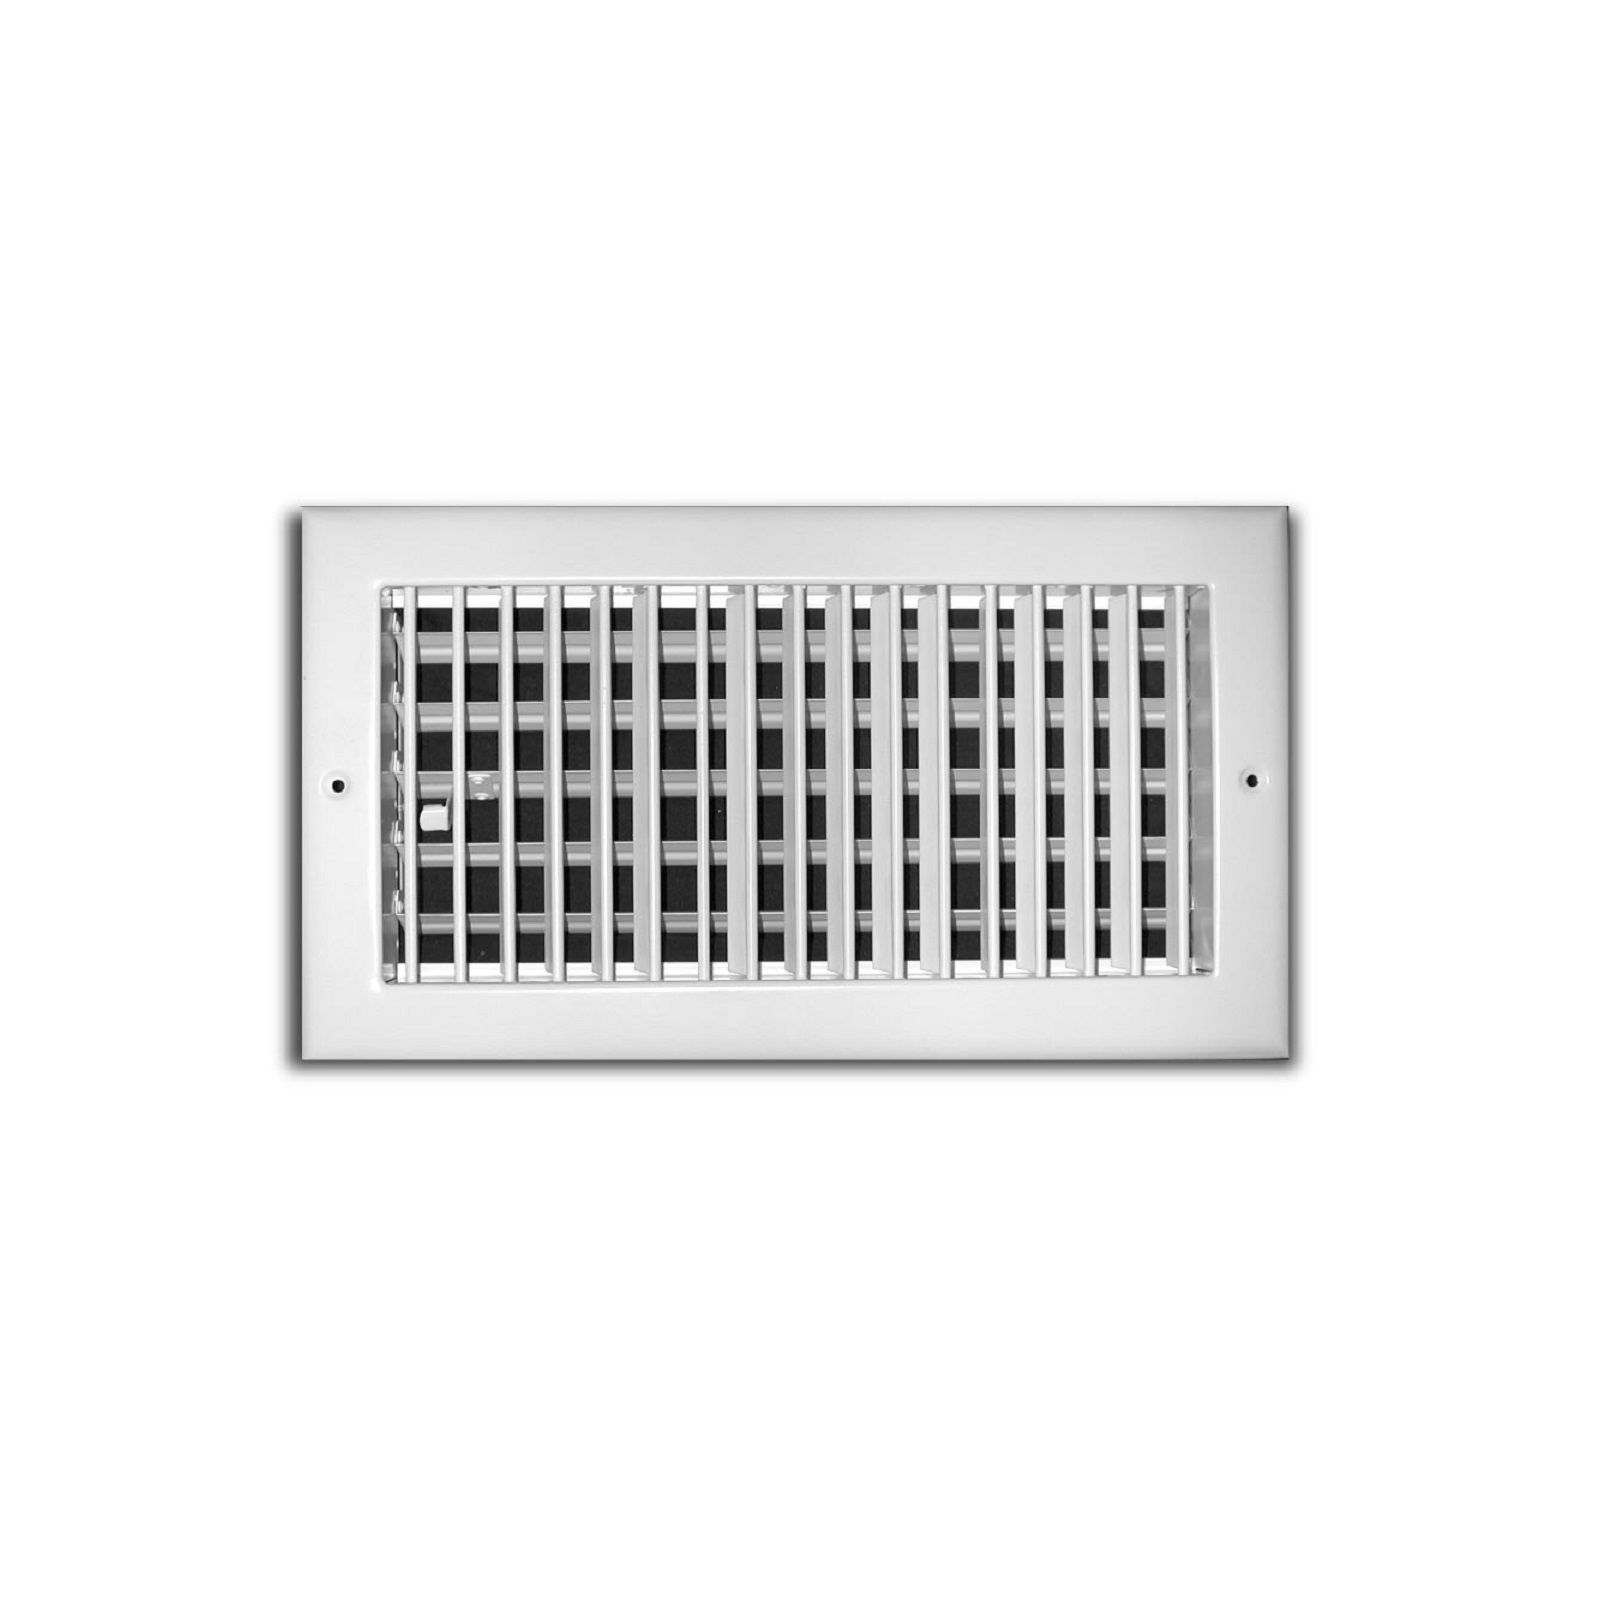 "TRUaire 210VM 10X08 - Steel Adjustable 1-Way Wall/Ceiling Register With Multi Shutter Damper, White, 10"" X 08"""